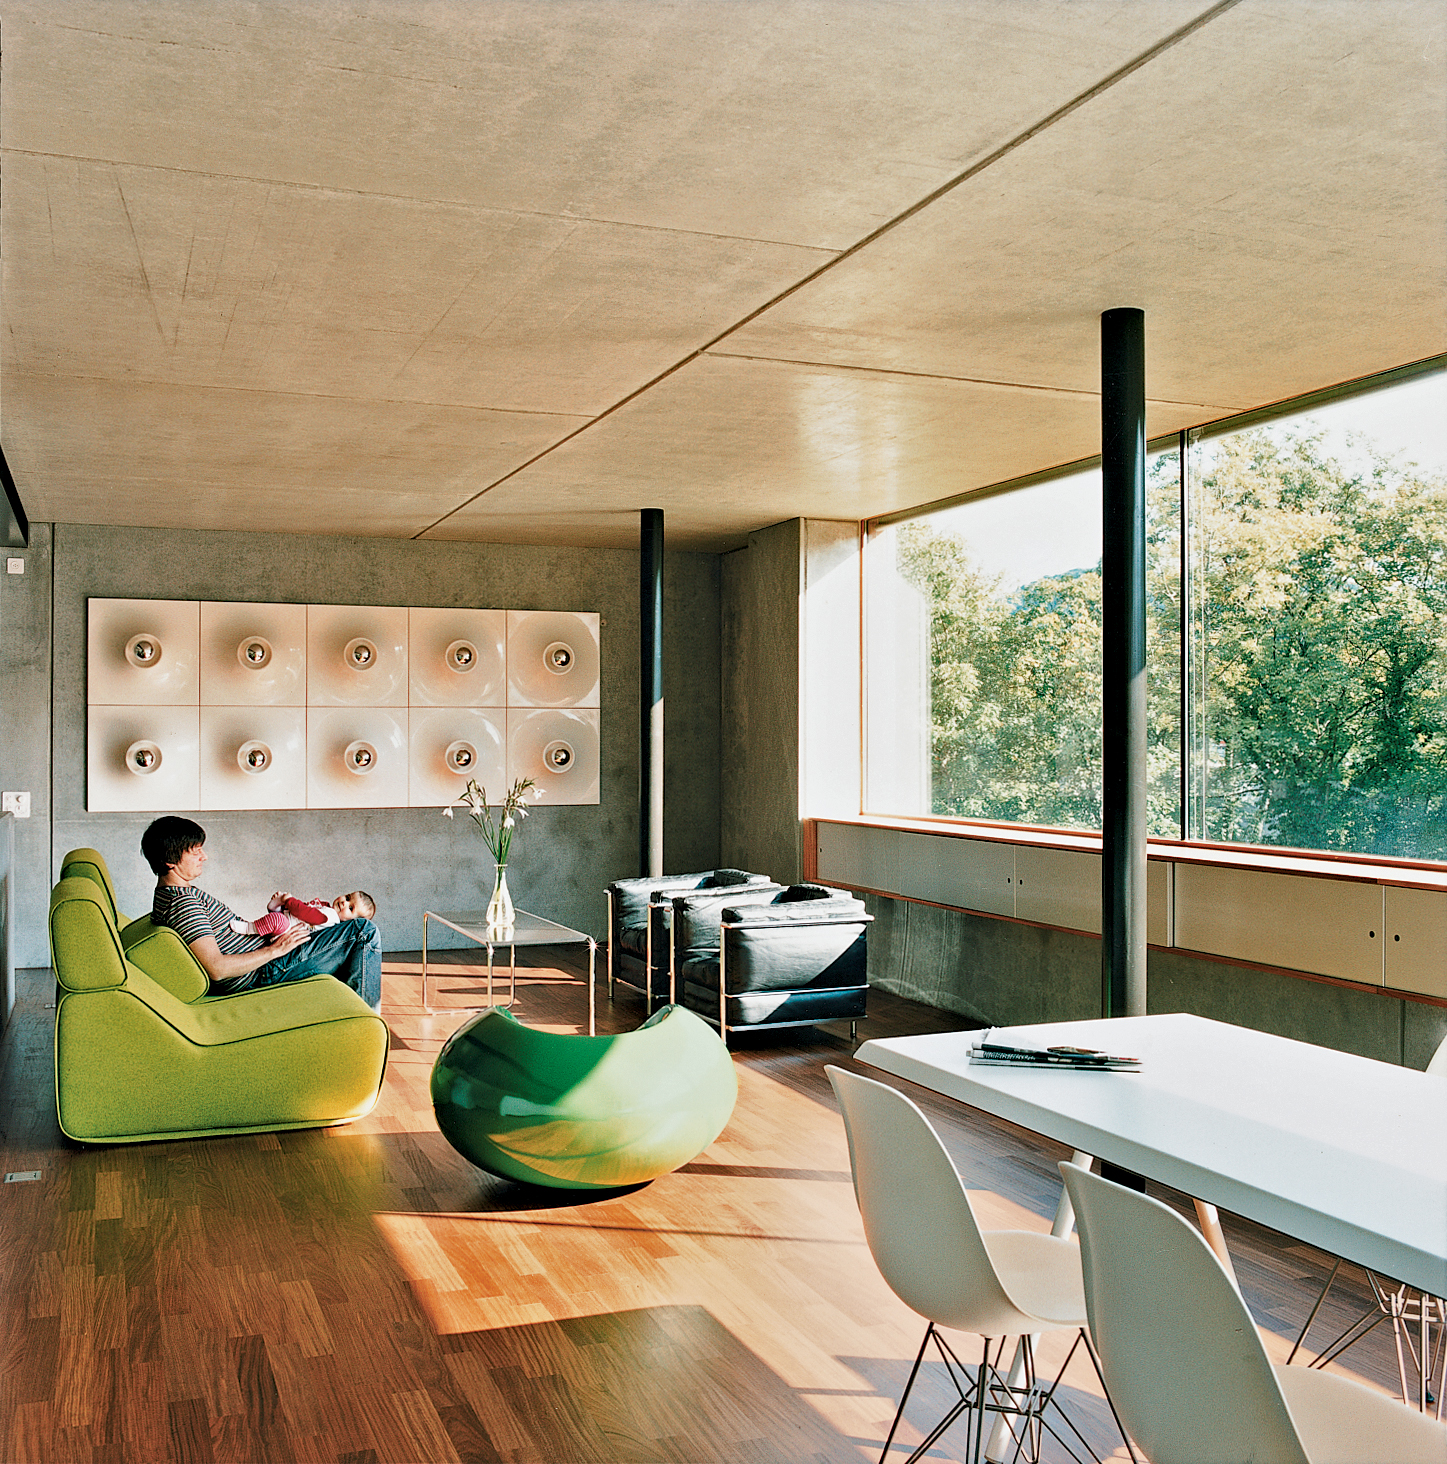 Concrete prefab house in Zurich